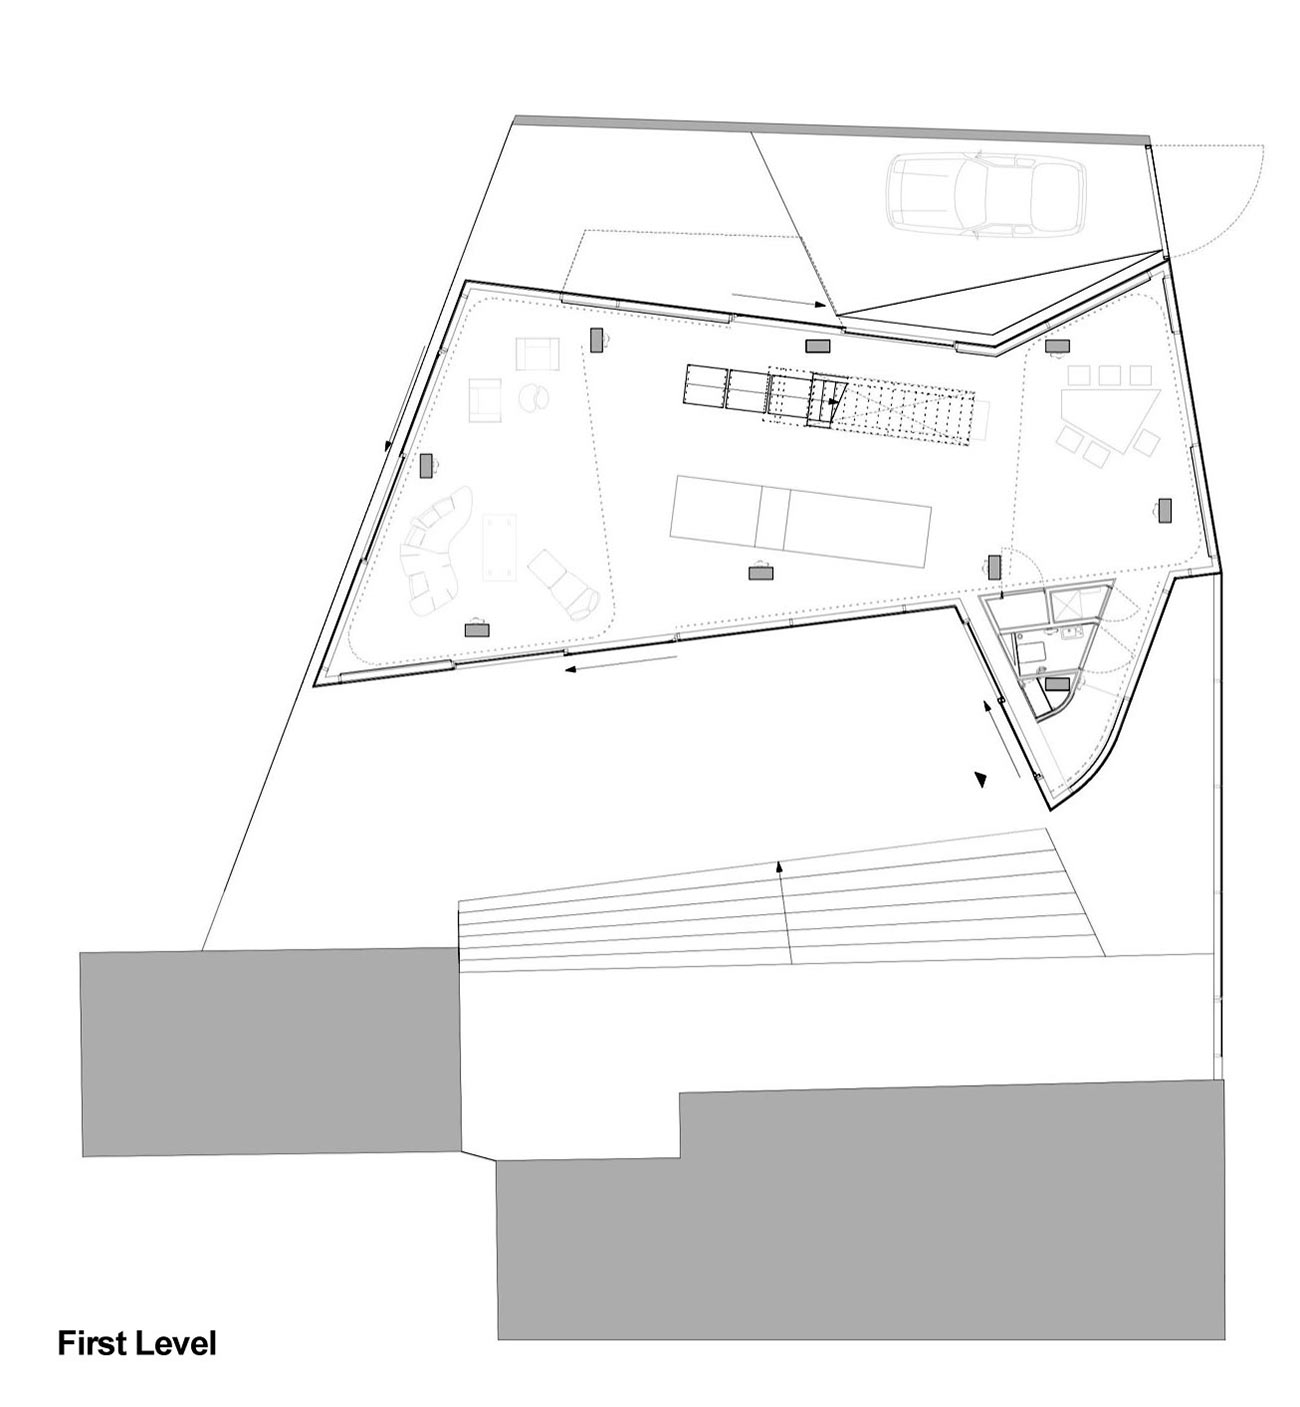 First Level Plan, H House, Netherlands by Wiel Arets Architects